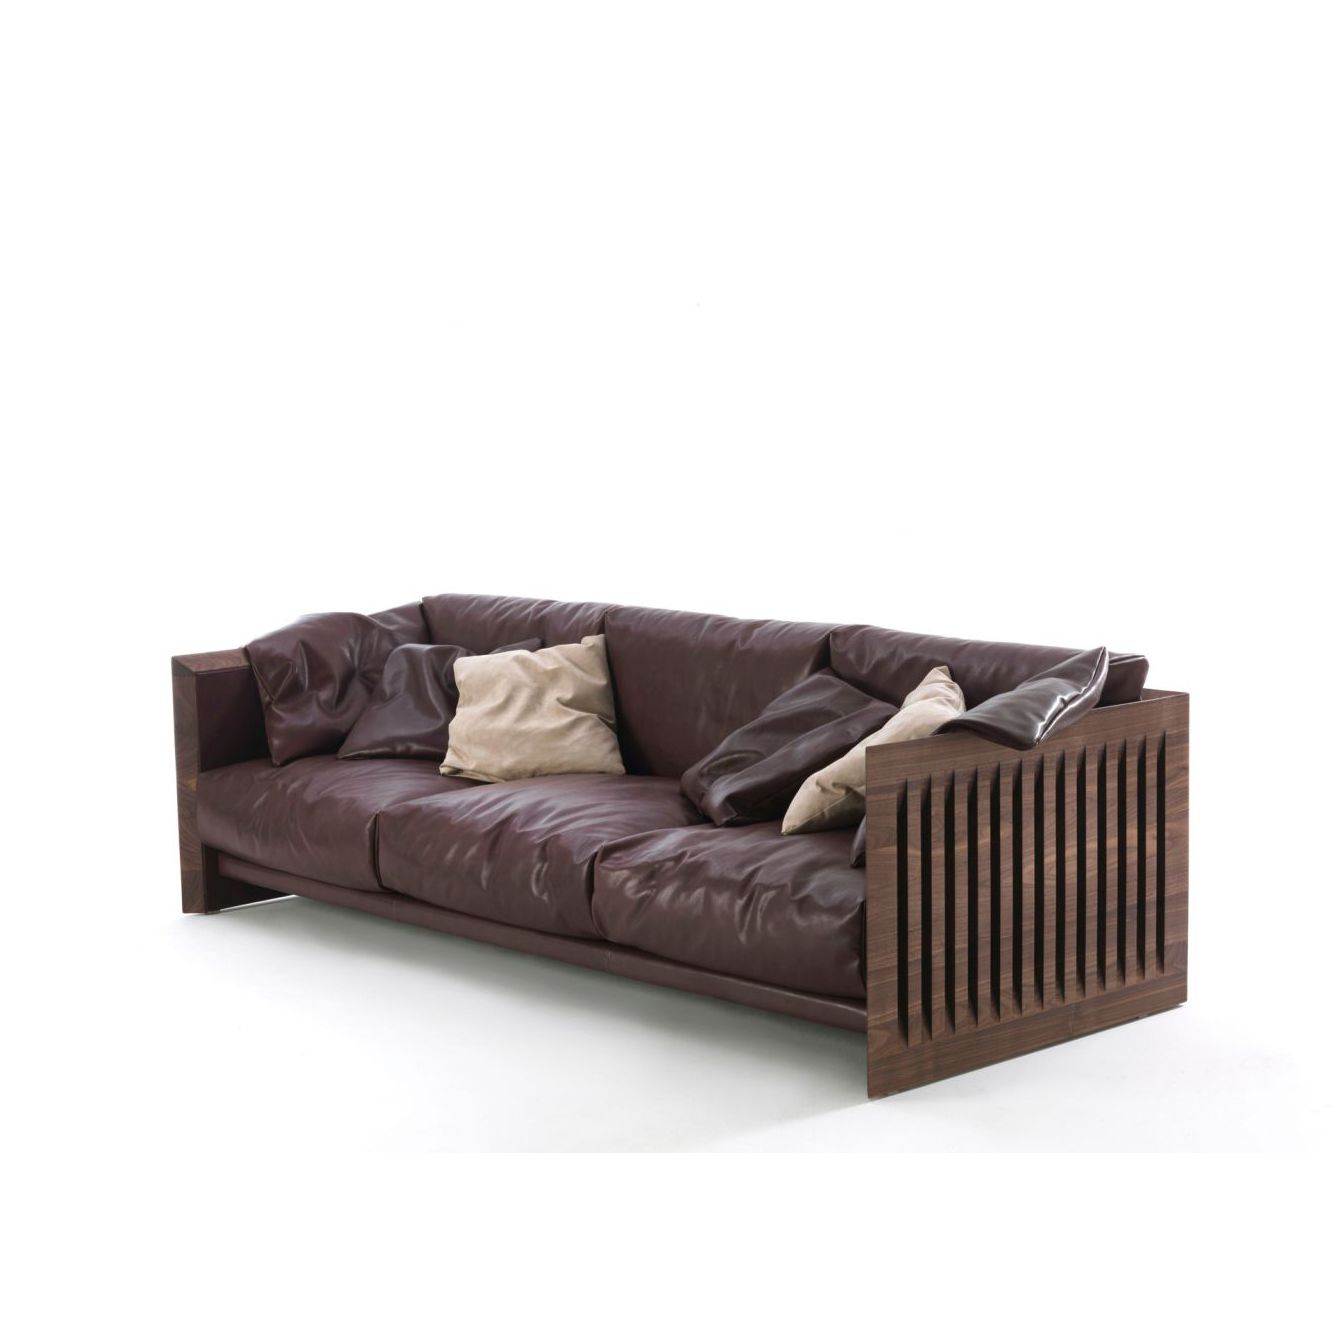 Designer Sofa Holz Contemporary Sofa Leather Wooden By Carlo Colombo